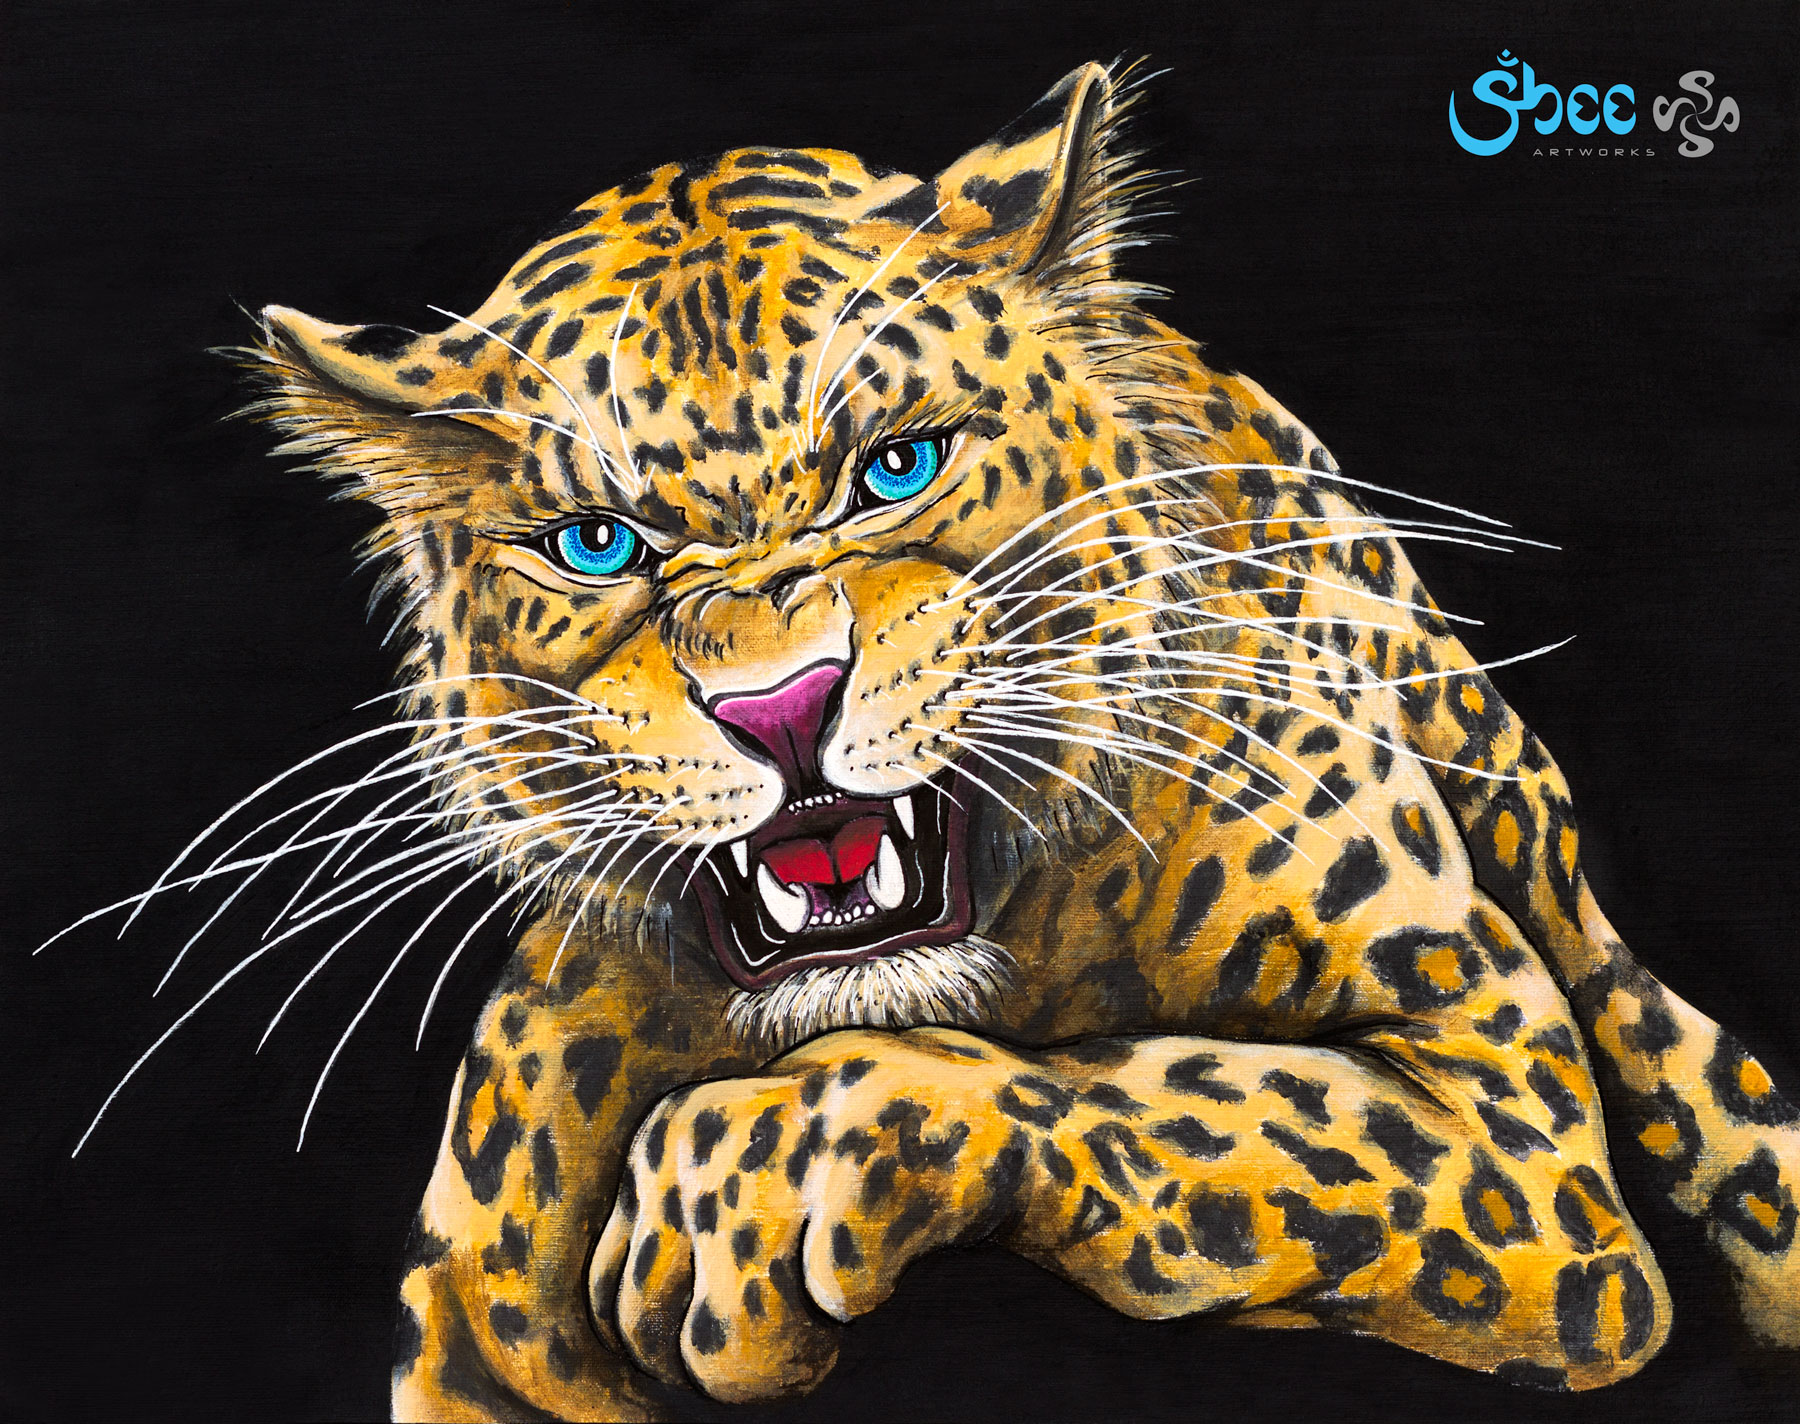 Retro Jaguar - acrylic on canvas - 35 x 28 cm